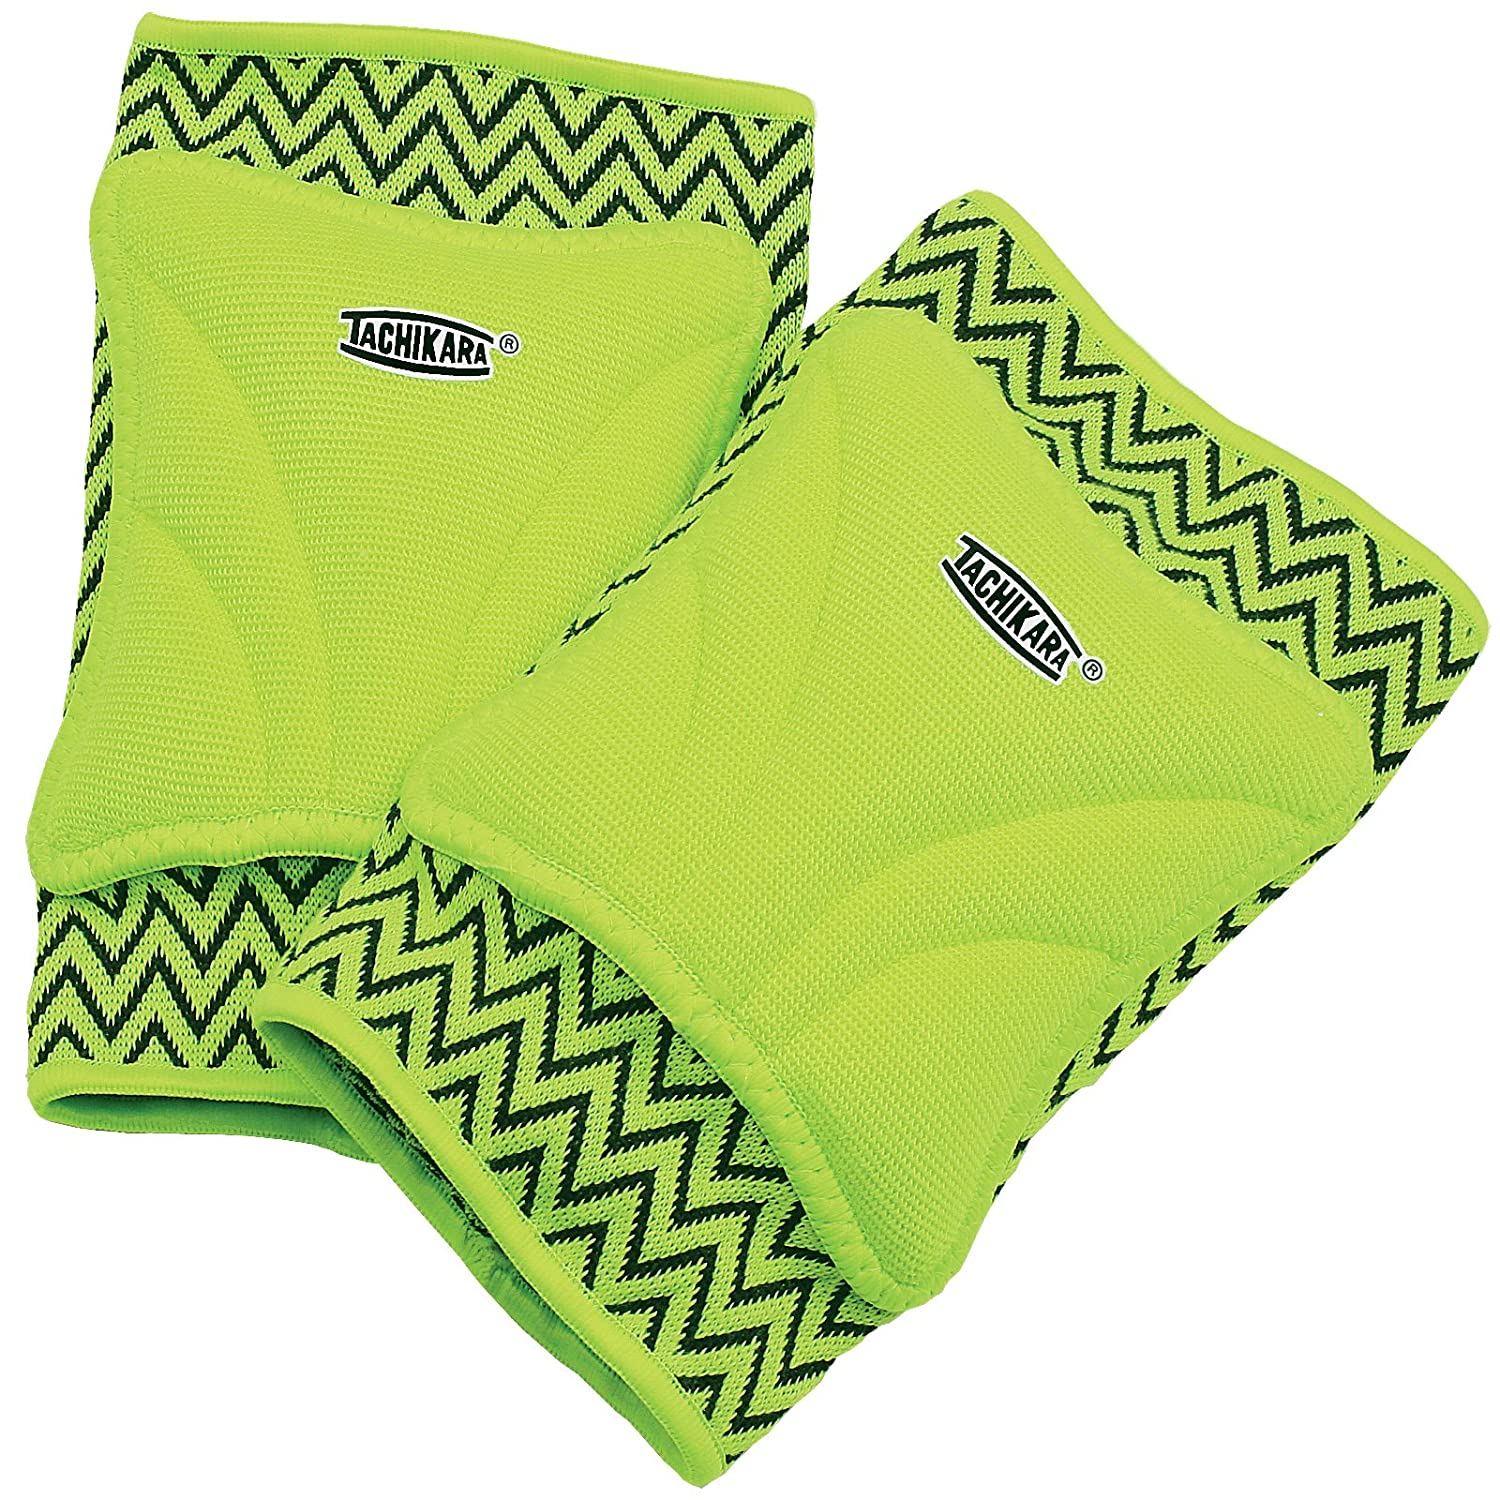 Top 10 Best Volleyball Knee Pads (2020 Reviews & Buying Guide) 5